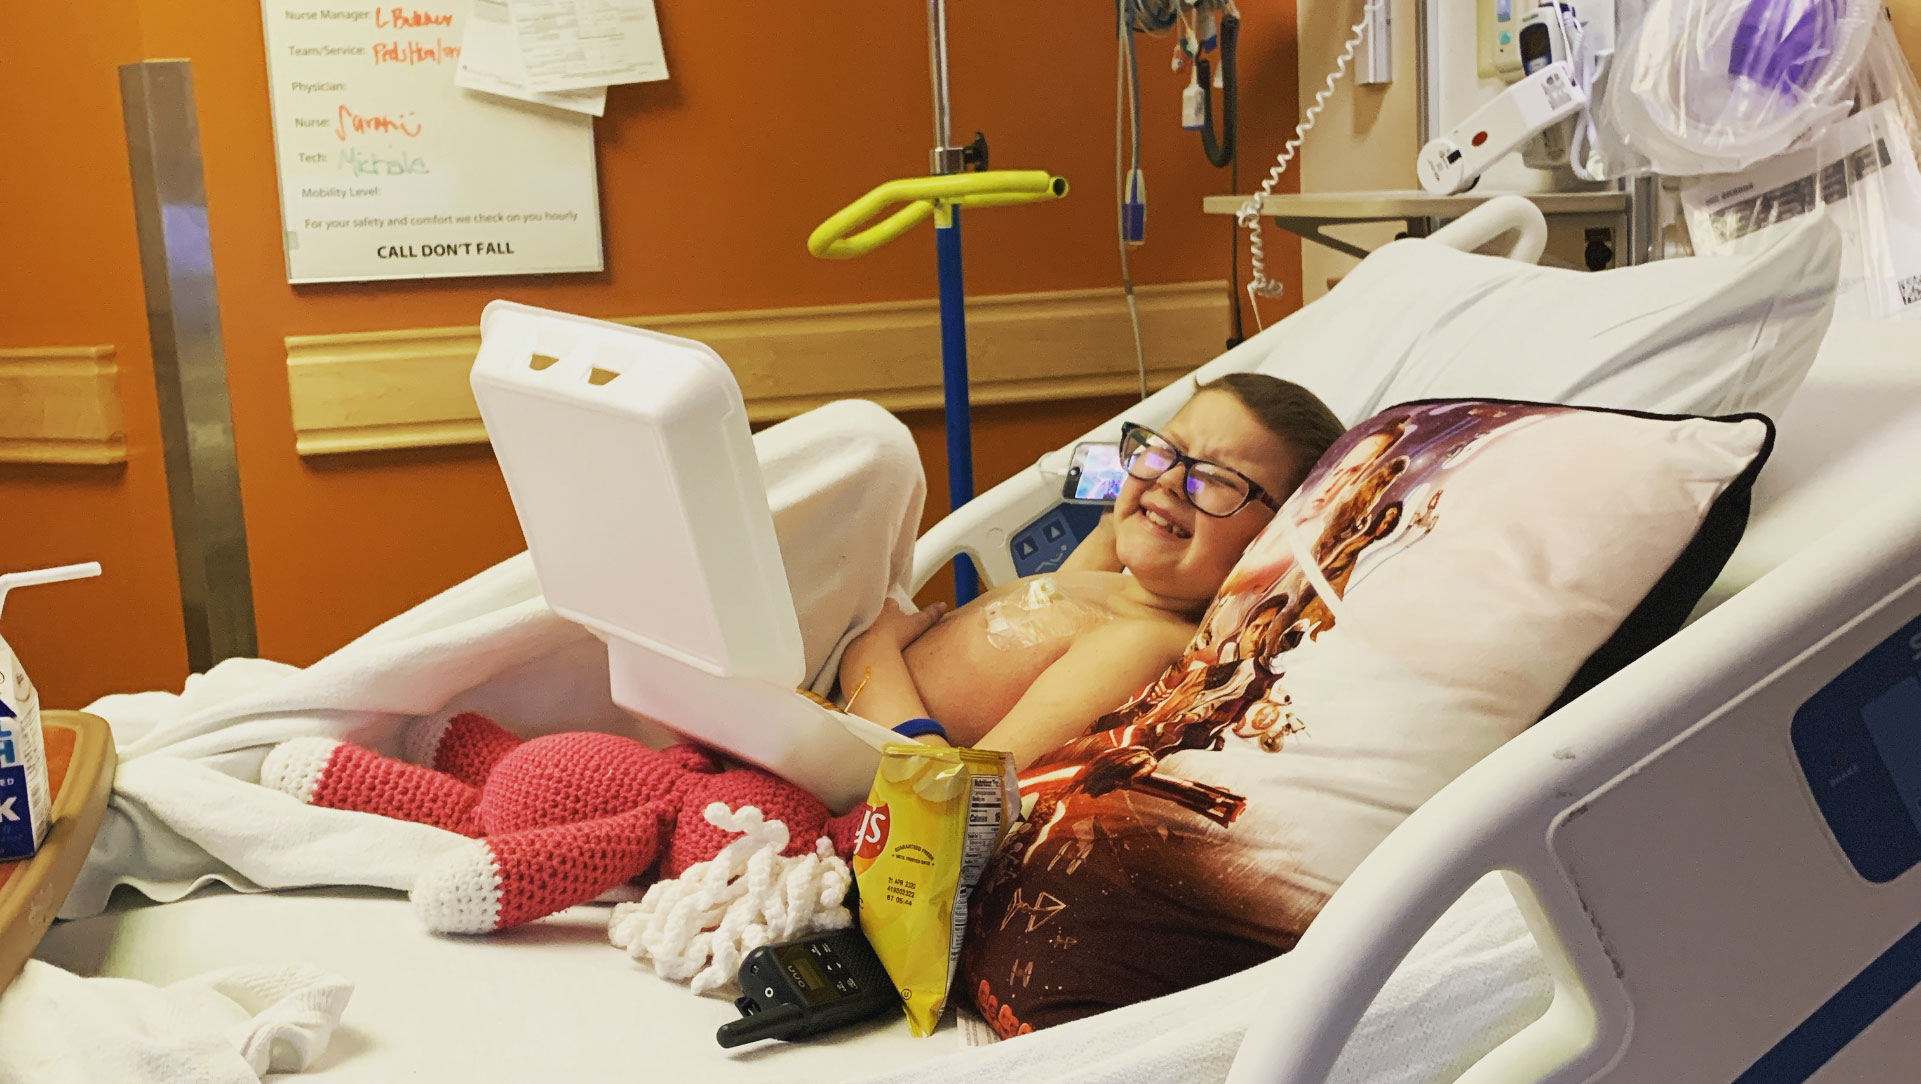 An older photo of Ellie laying in her hospital bed, enjoying a snack and giving the camera a cheesy smile.